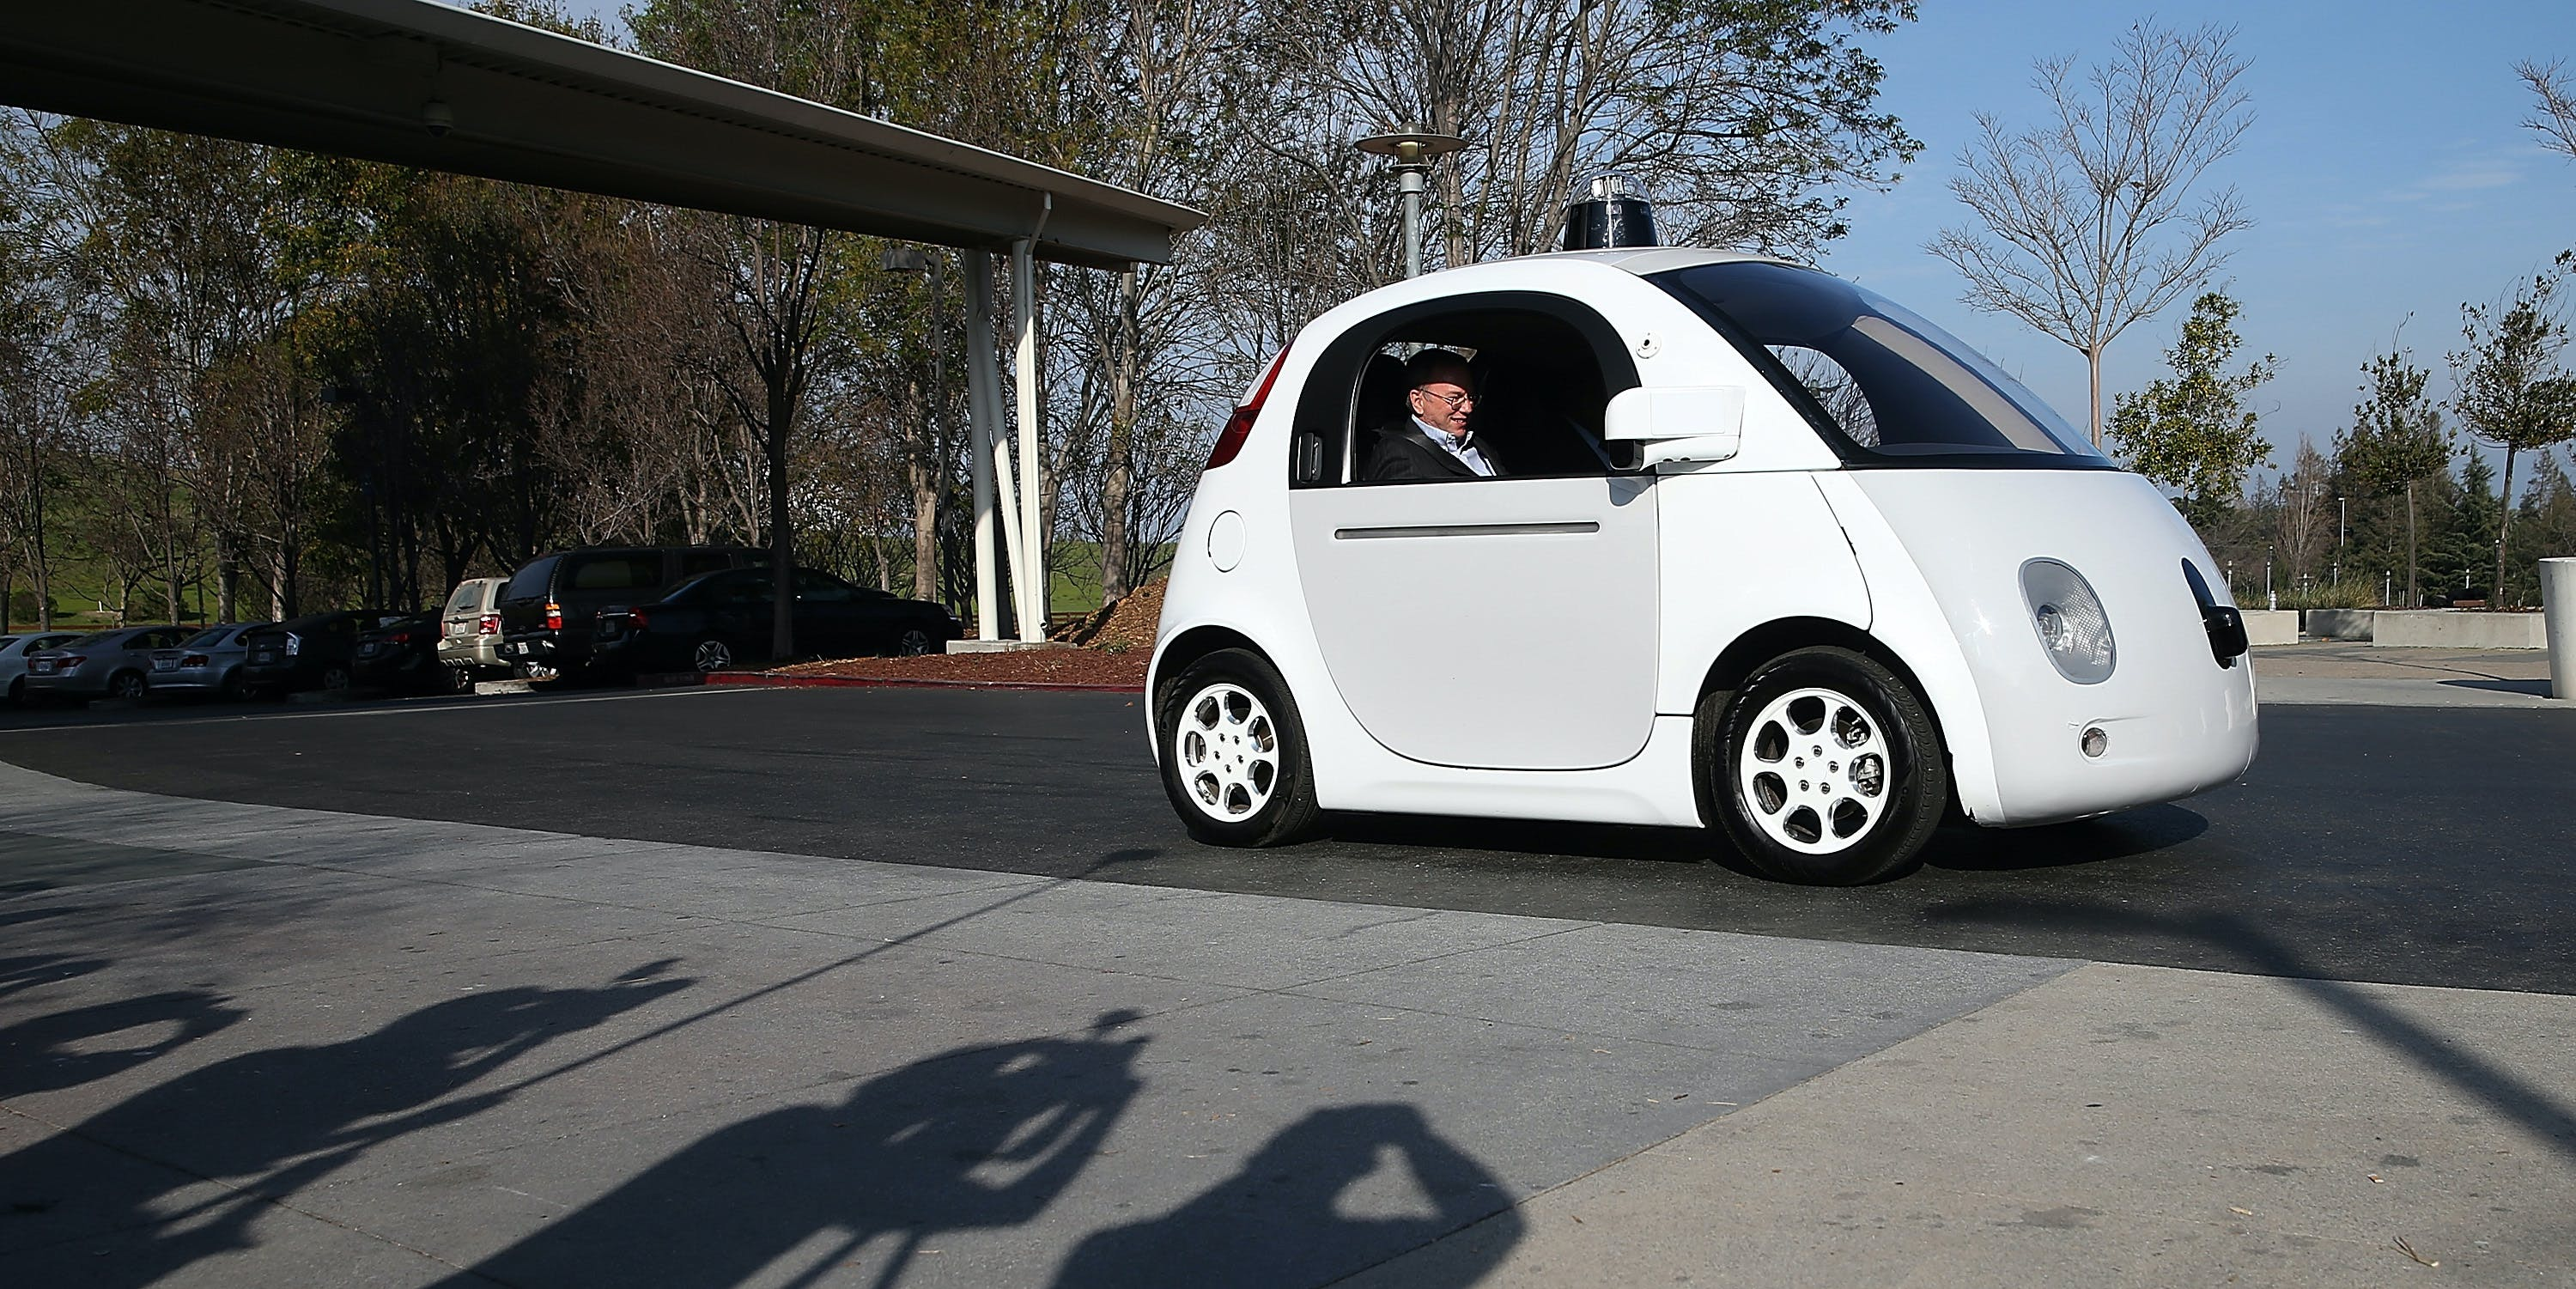 Google's Driverless Car Computer Will Be Treated the Same as a Human Driver